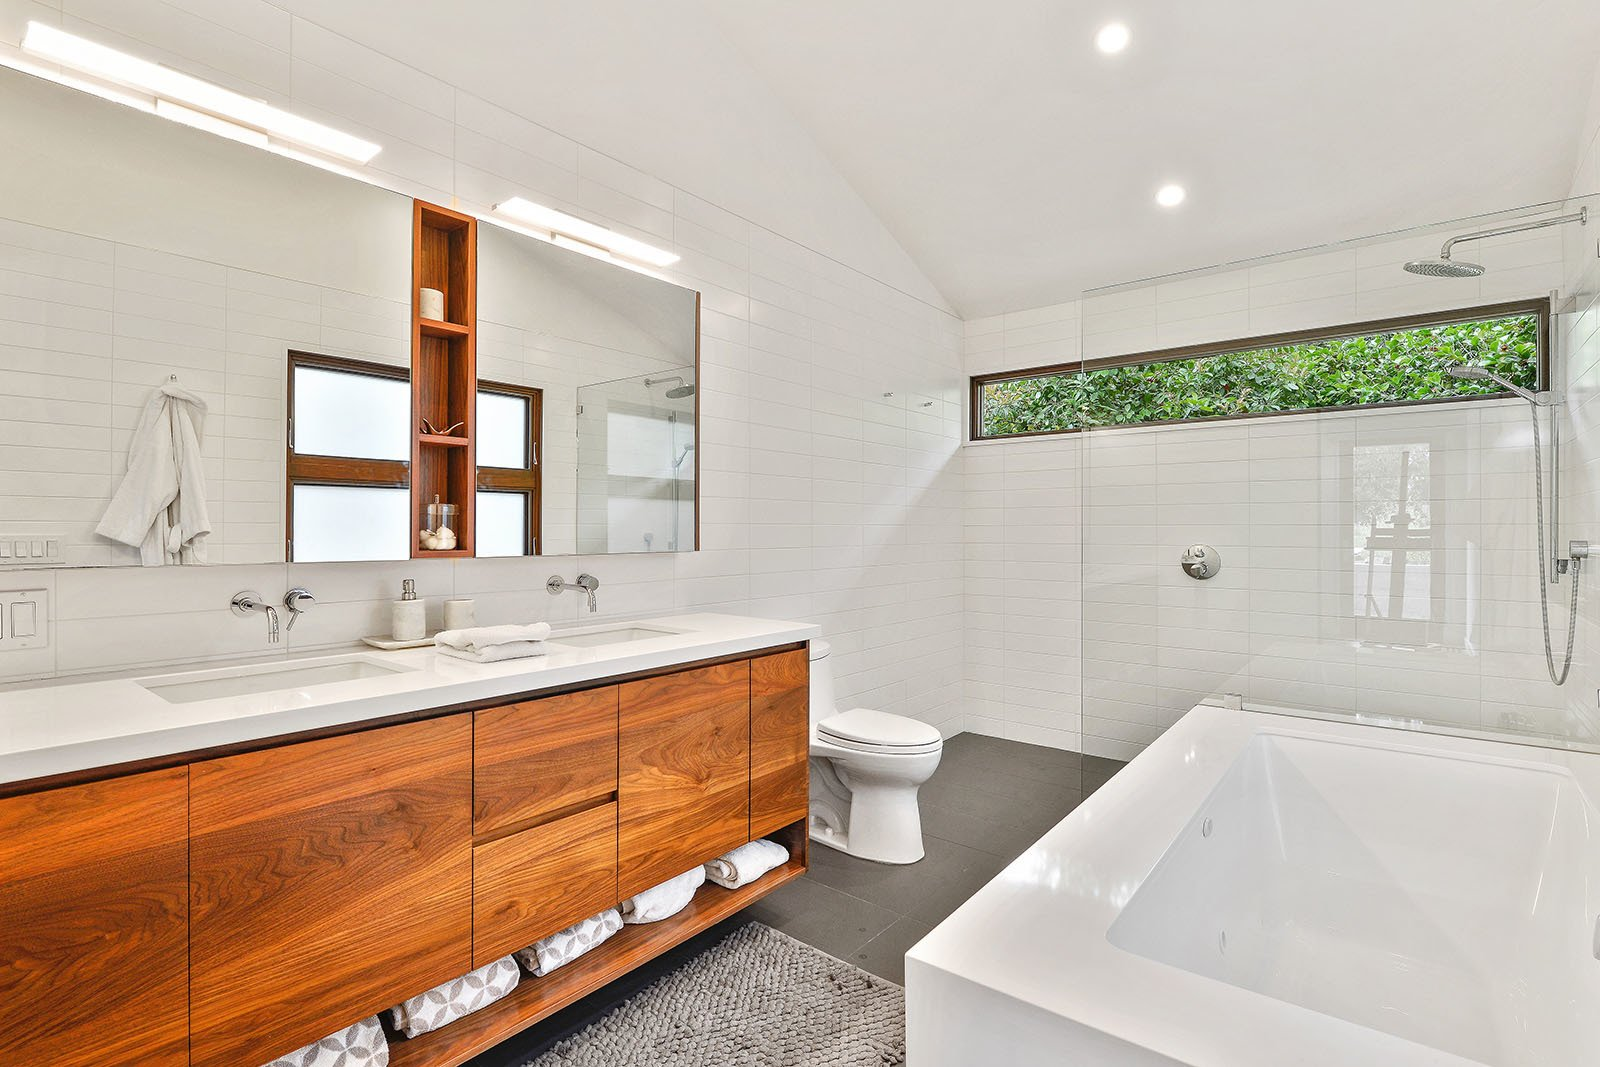 Bath Tagged: Bath Room, Engineered Quartz Counter, Undermount Sink, Ceramic Tile Floor, Tile Counter, Undermount Tub, Open Shower, Subway Tile Wall, Ceiling Lighting, Ceramic Tile Wall, and One Piece Toilet.  Portola Valley by patrick perez/designpad architecture